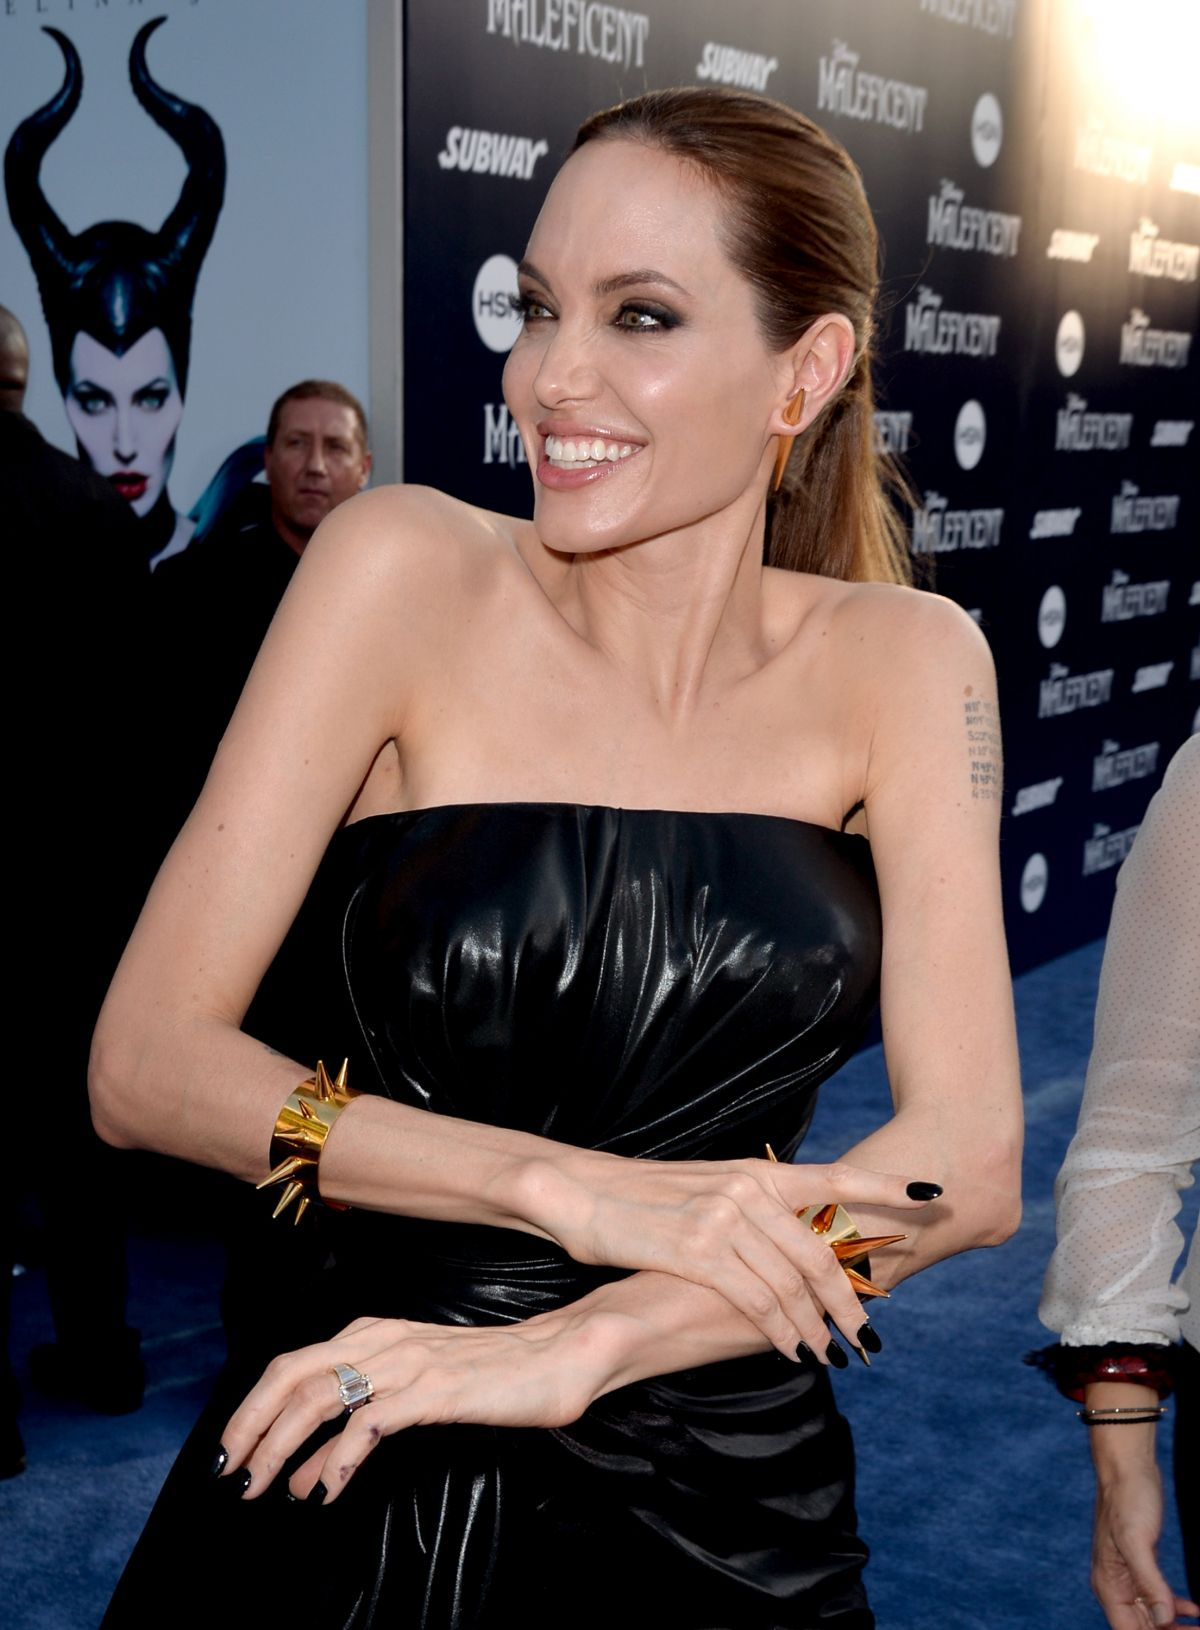 angelina-jolie-at-maleficent-premiere-in-hollywood_1